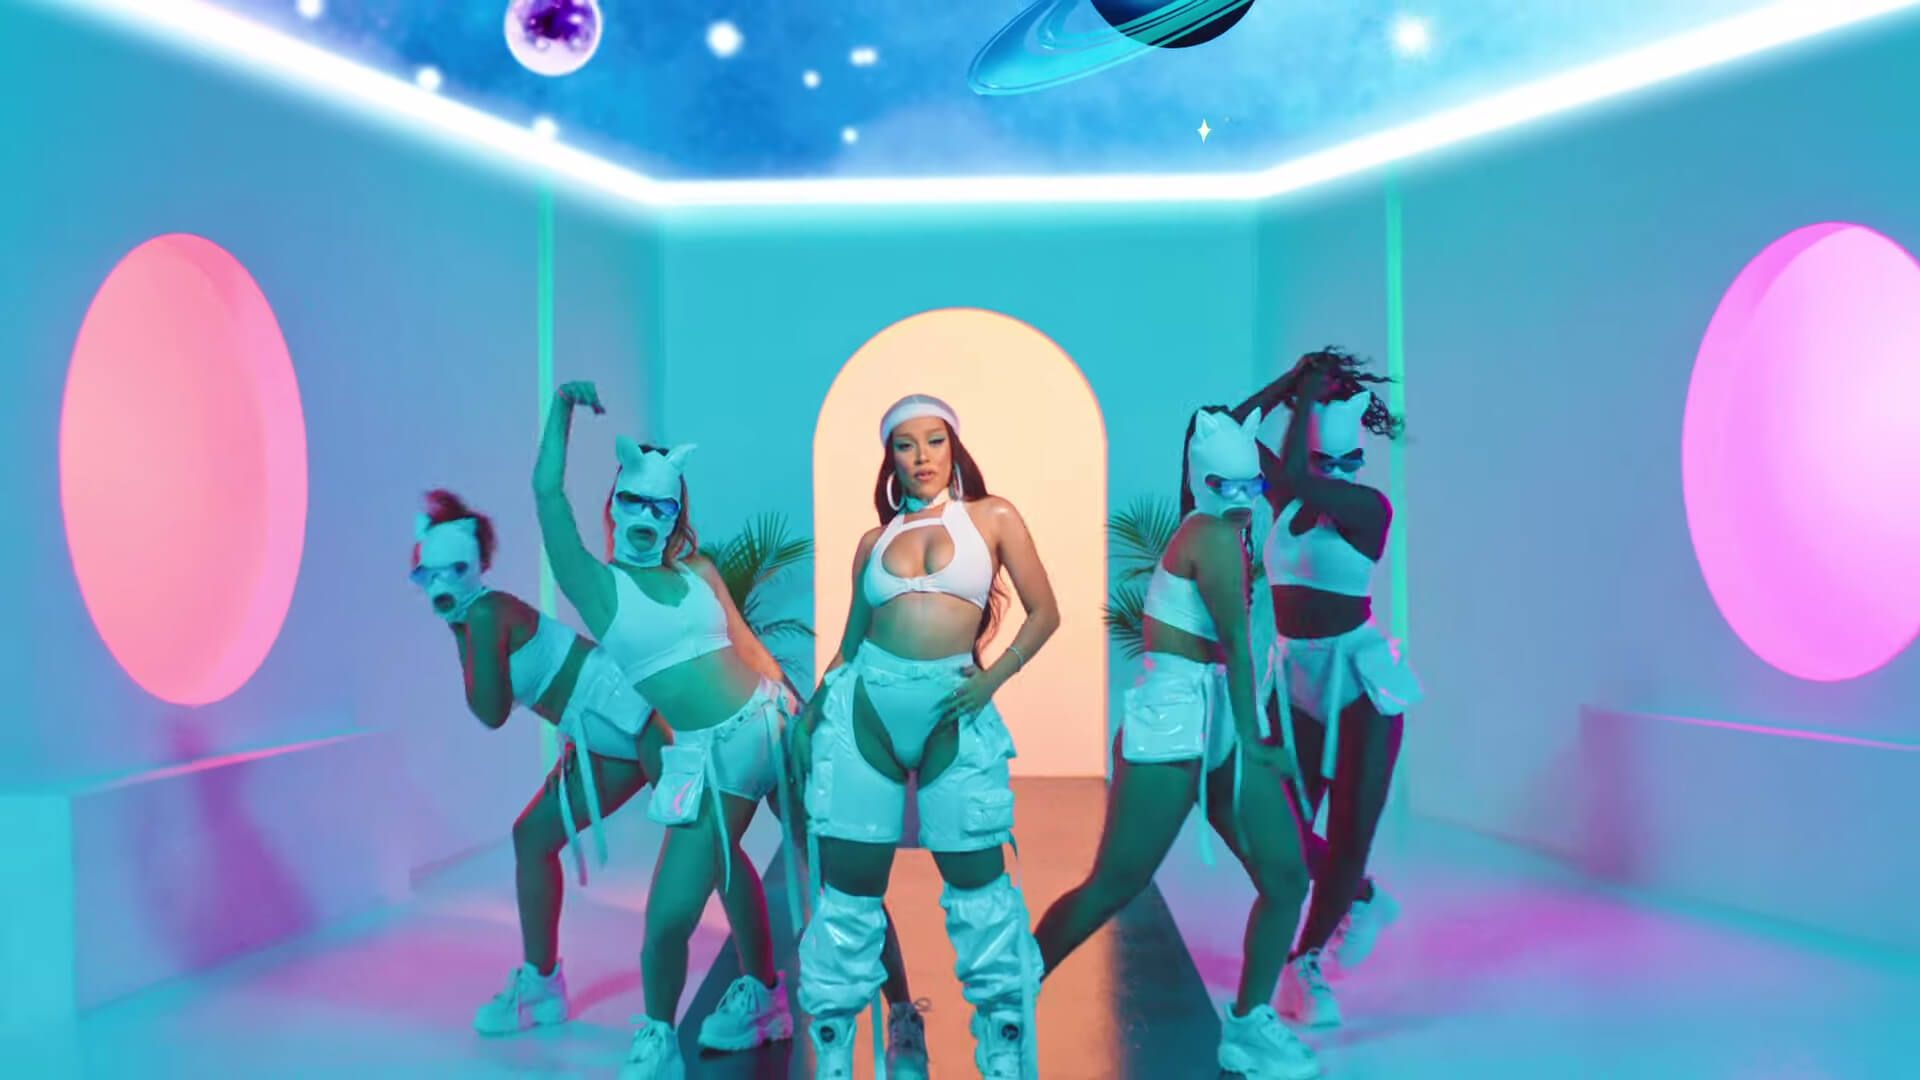 Doja Cat ft. Gucci Mane Like That [MP3 DOWNLOAD] in 2020